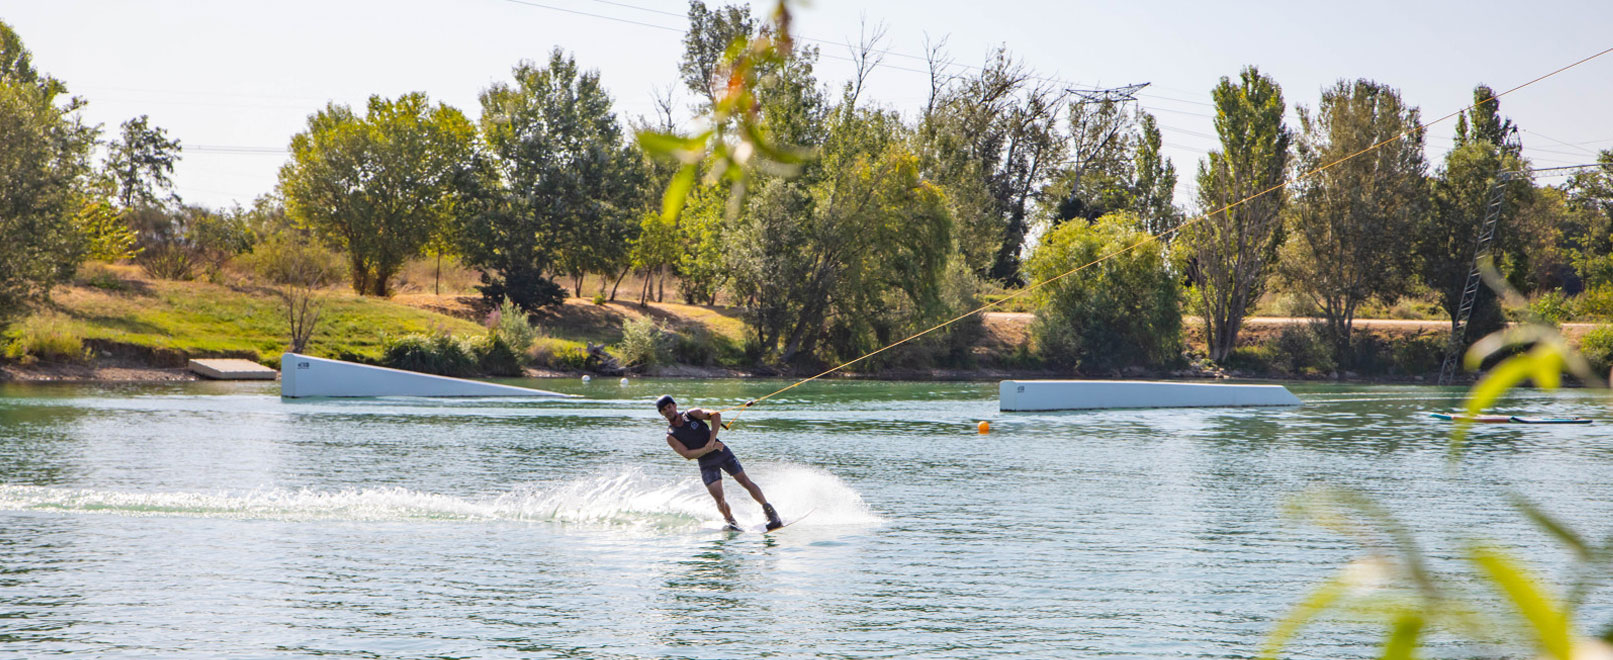 Water skiing in provence © Hocquel